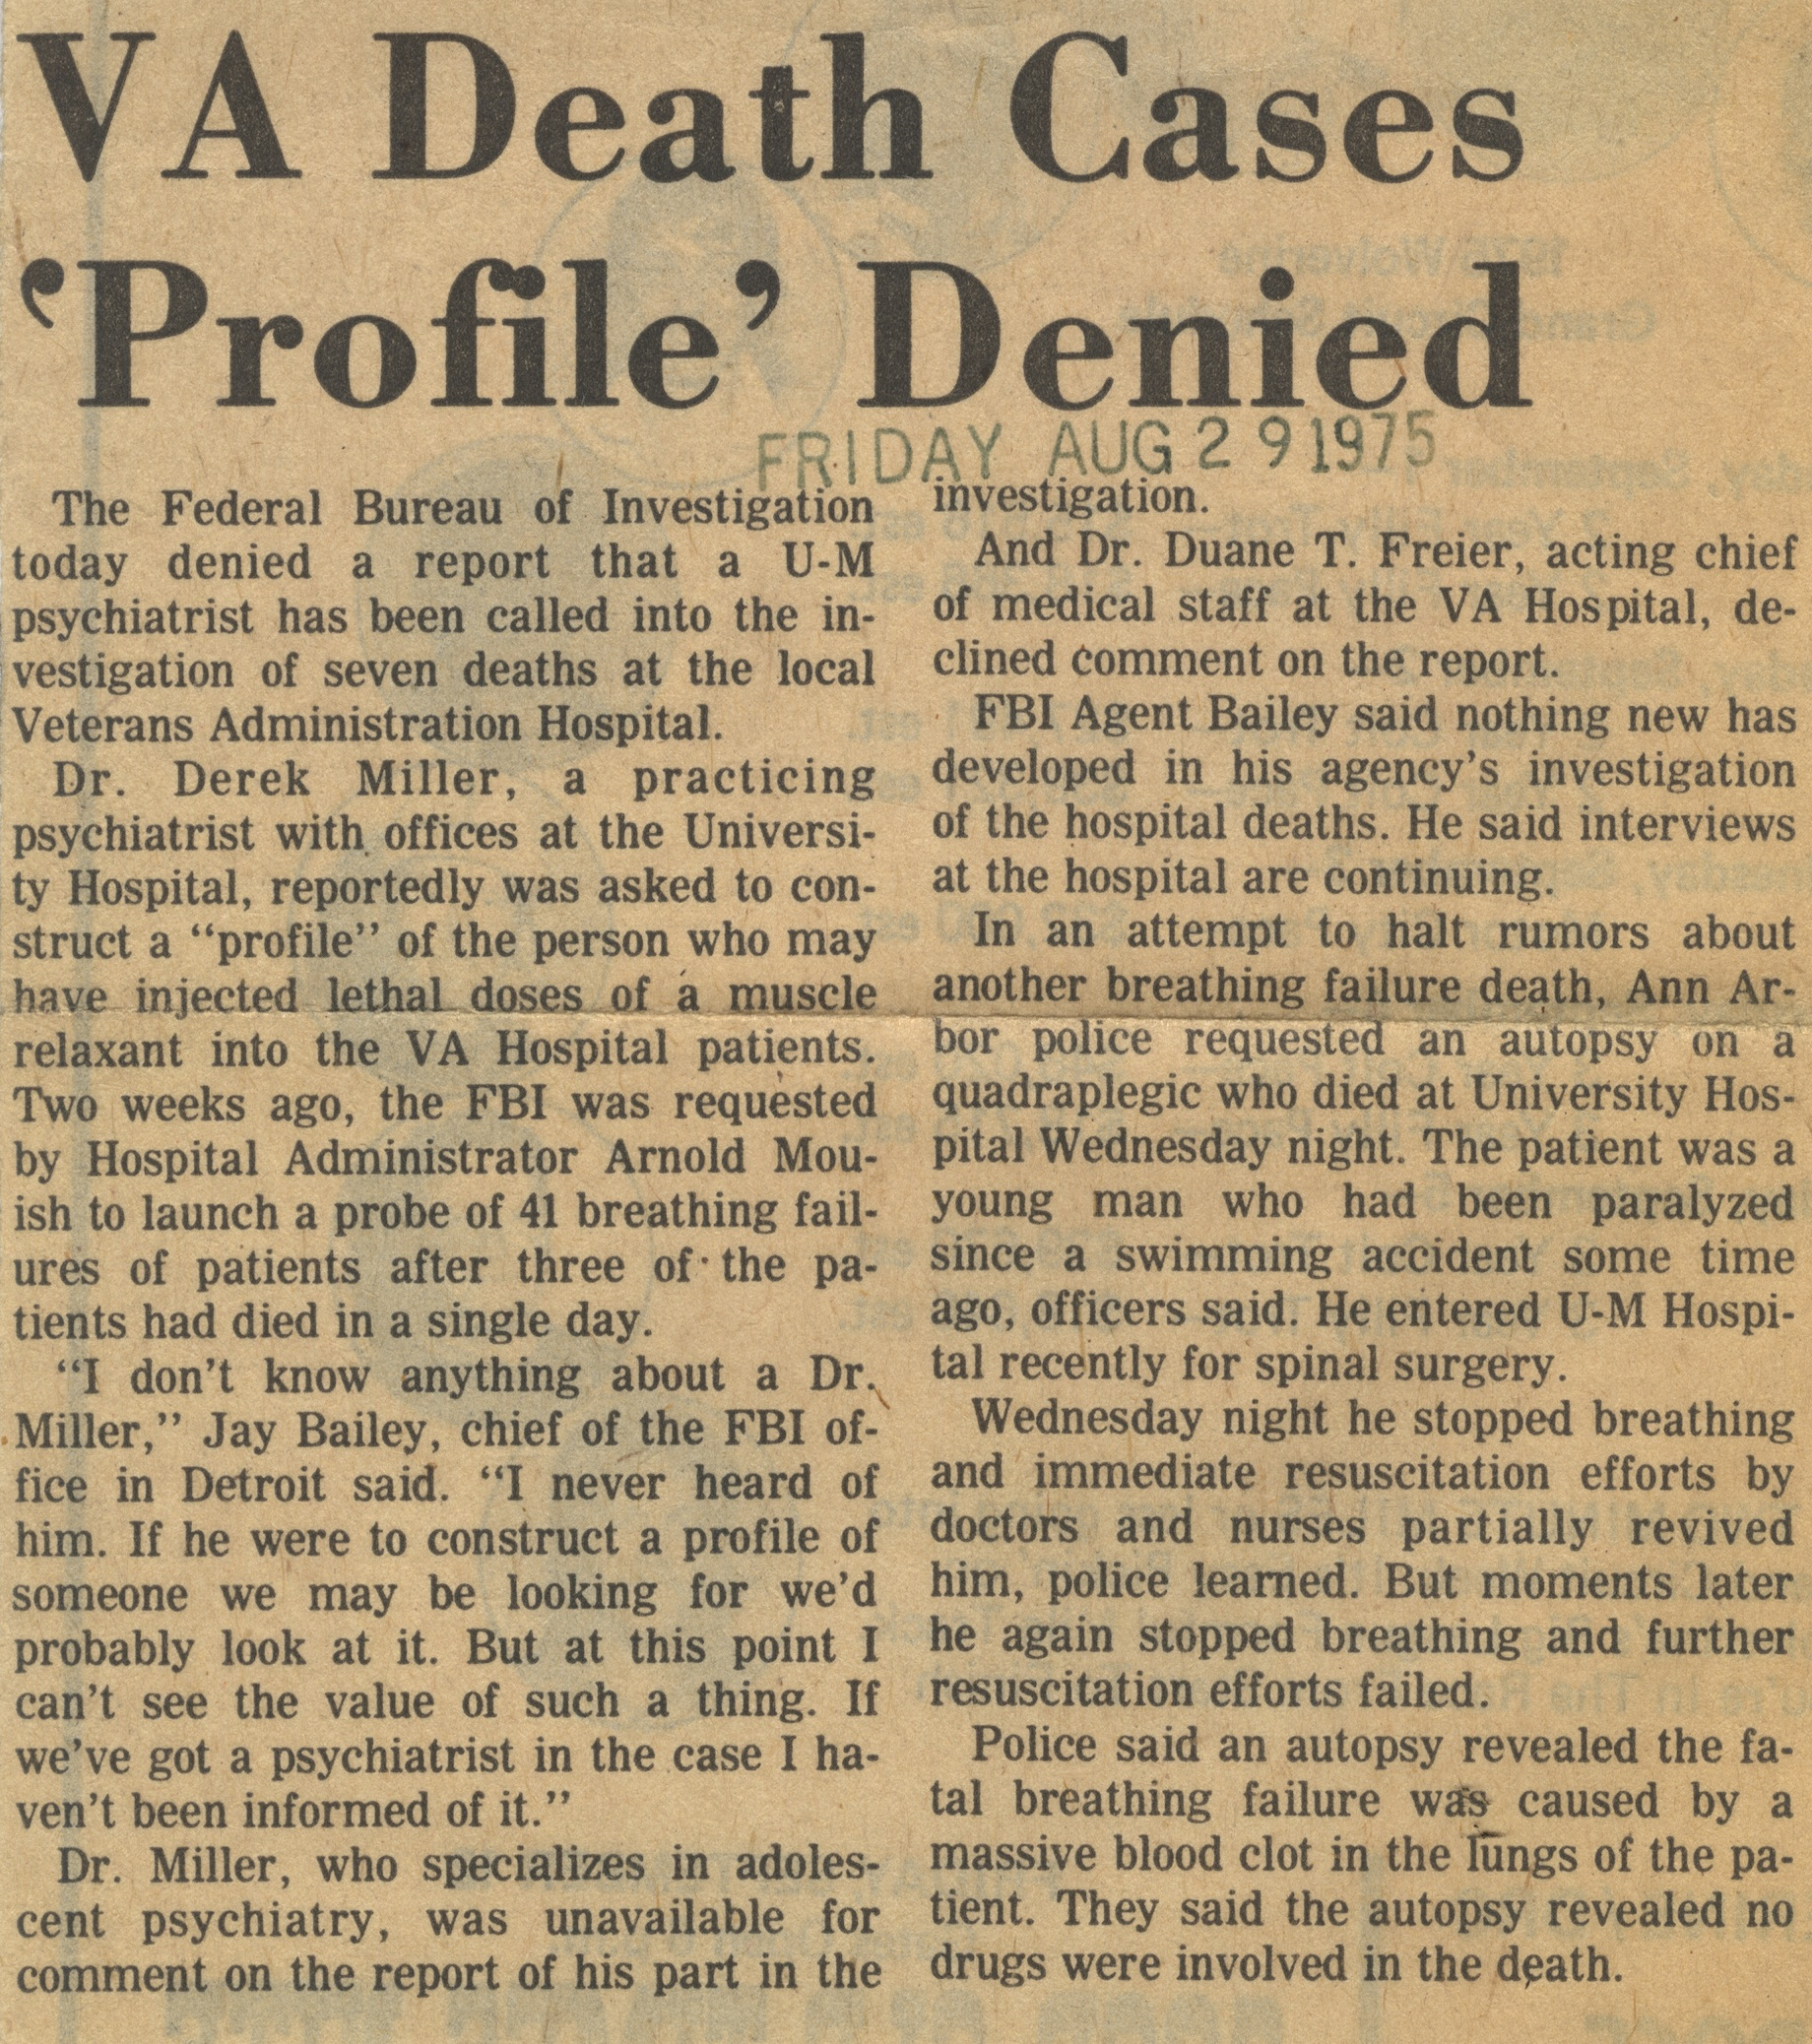 V A Death Cases 'Profile' Denied image